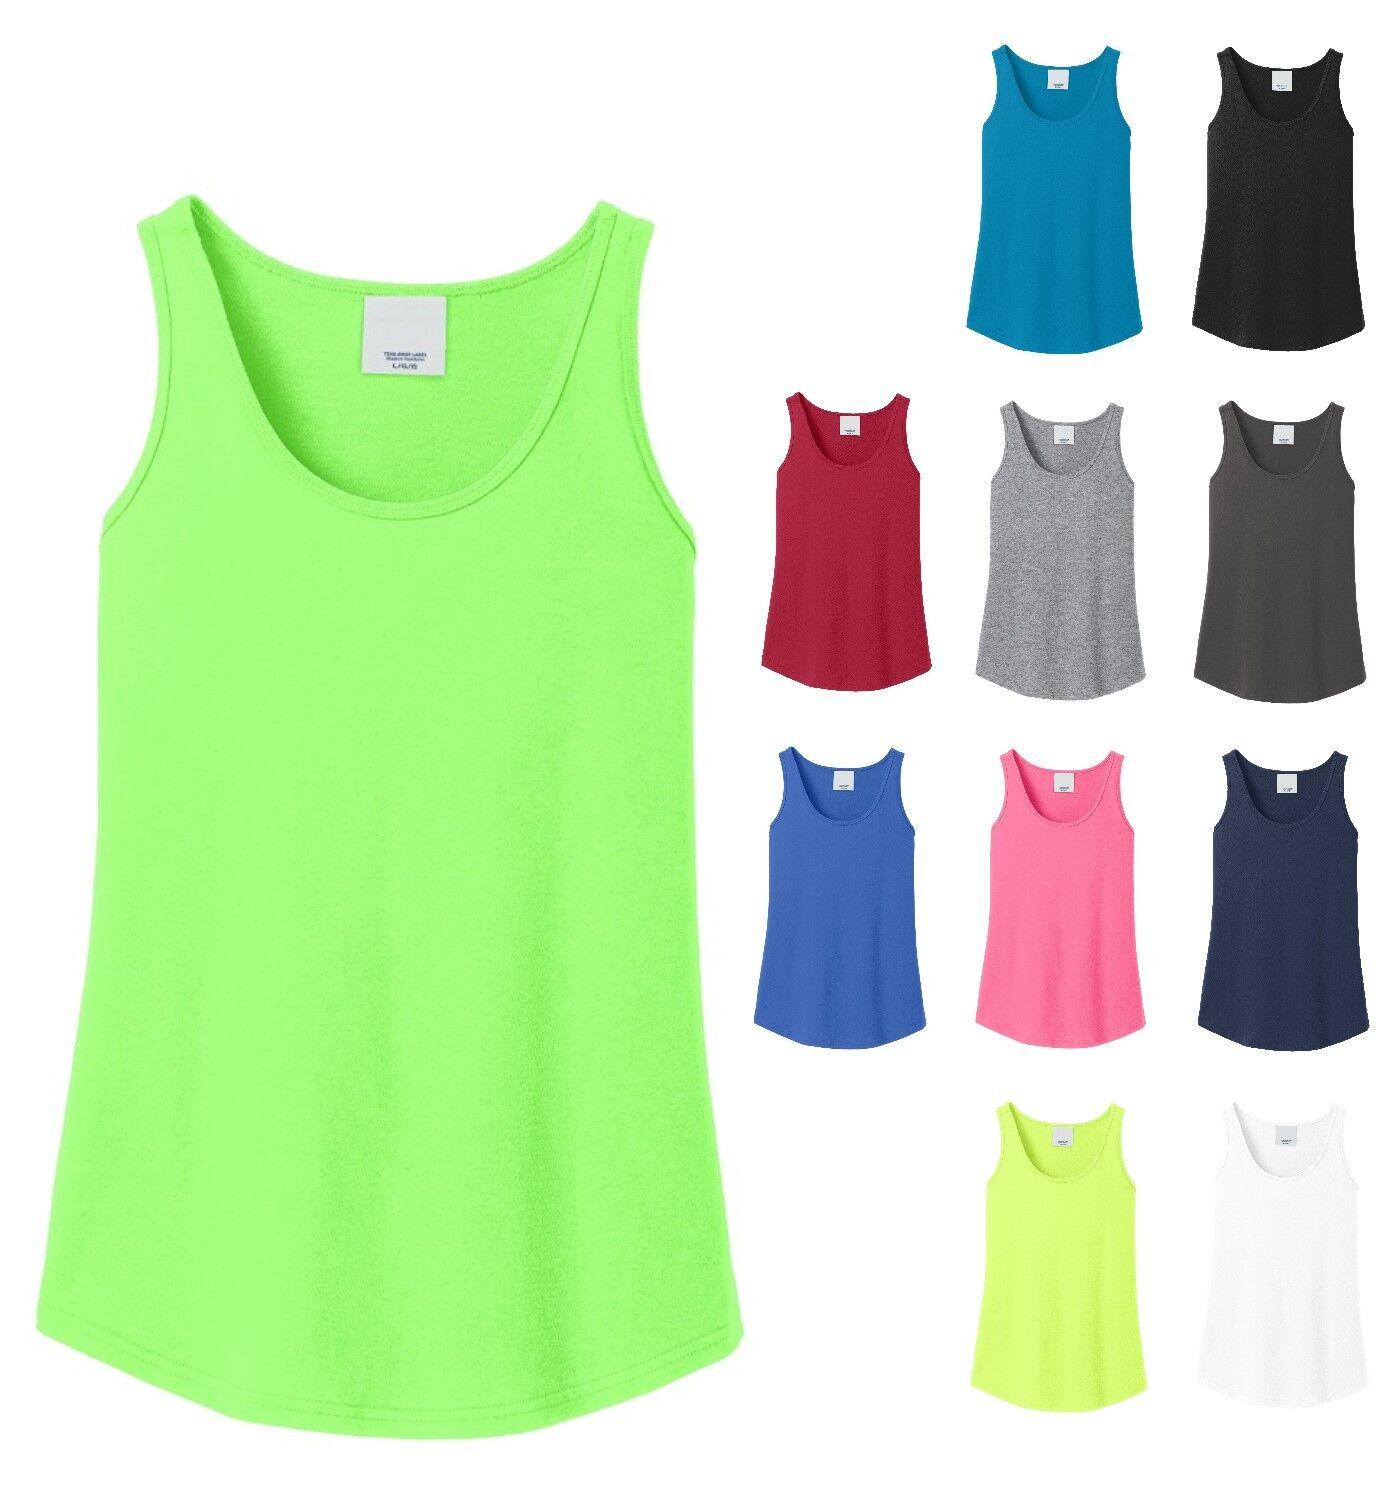 ladies tank top layerable cotton or blend